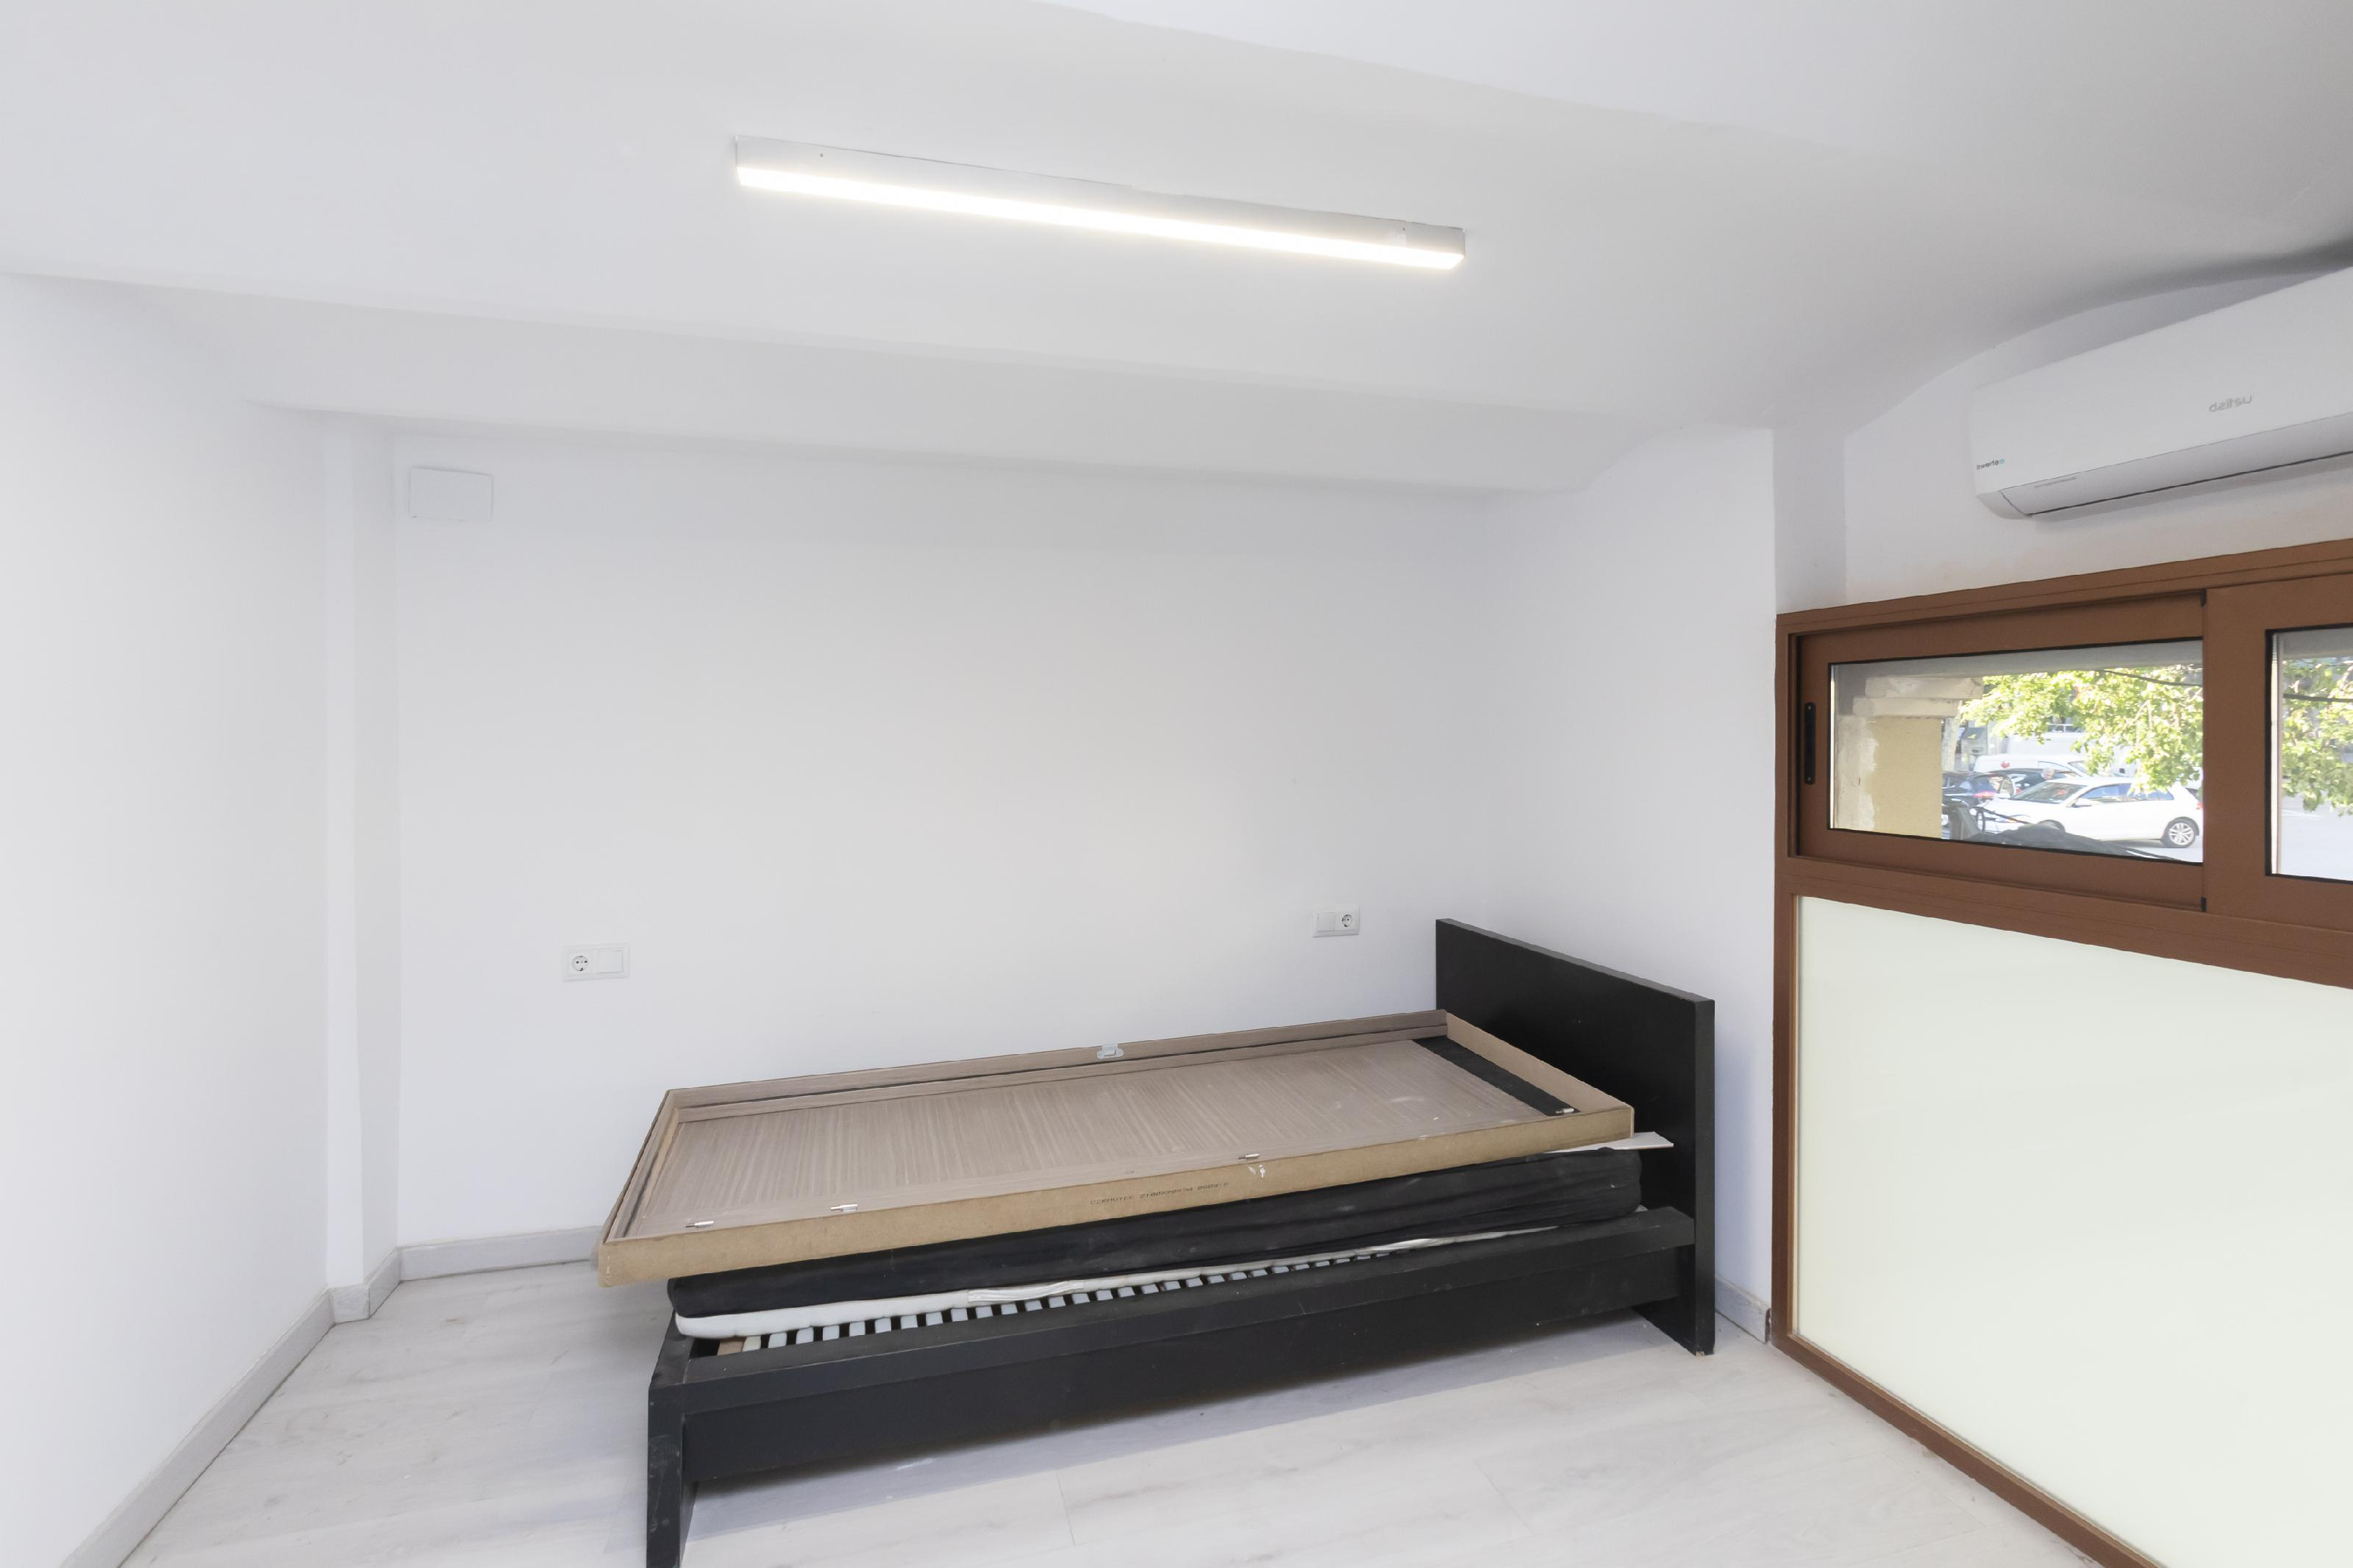 242978 Flat for sale in Gràcia, Camp Grassot and Gràcia Nova 24